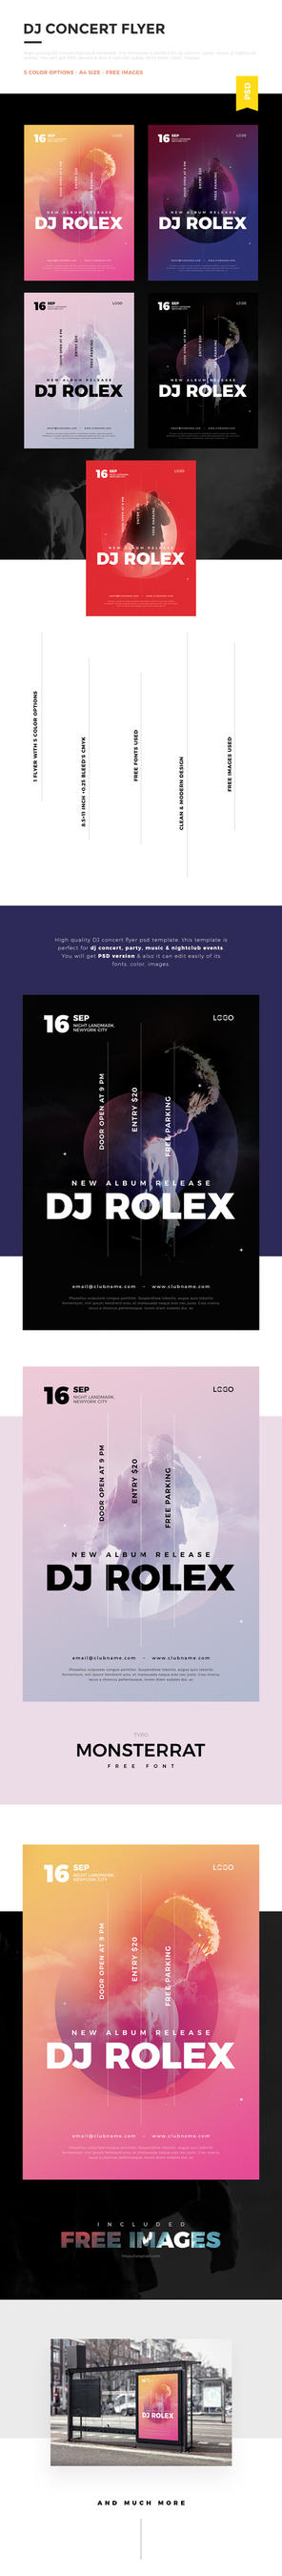 DJ Concert Flyer / DJ Poster by webduckdesign